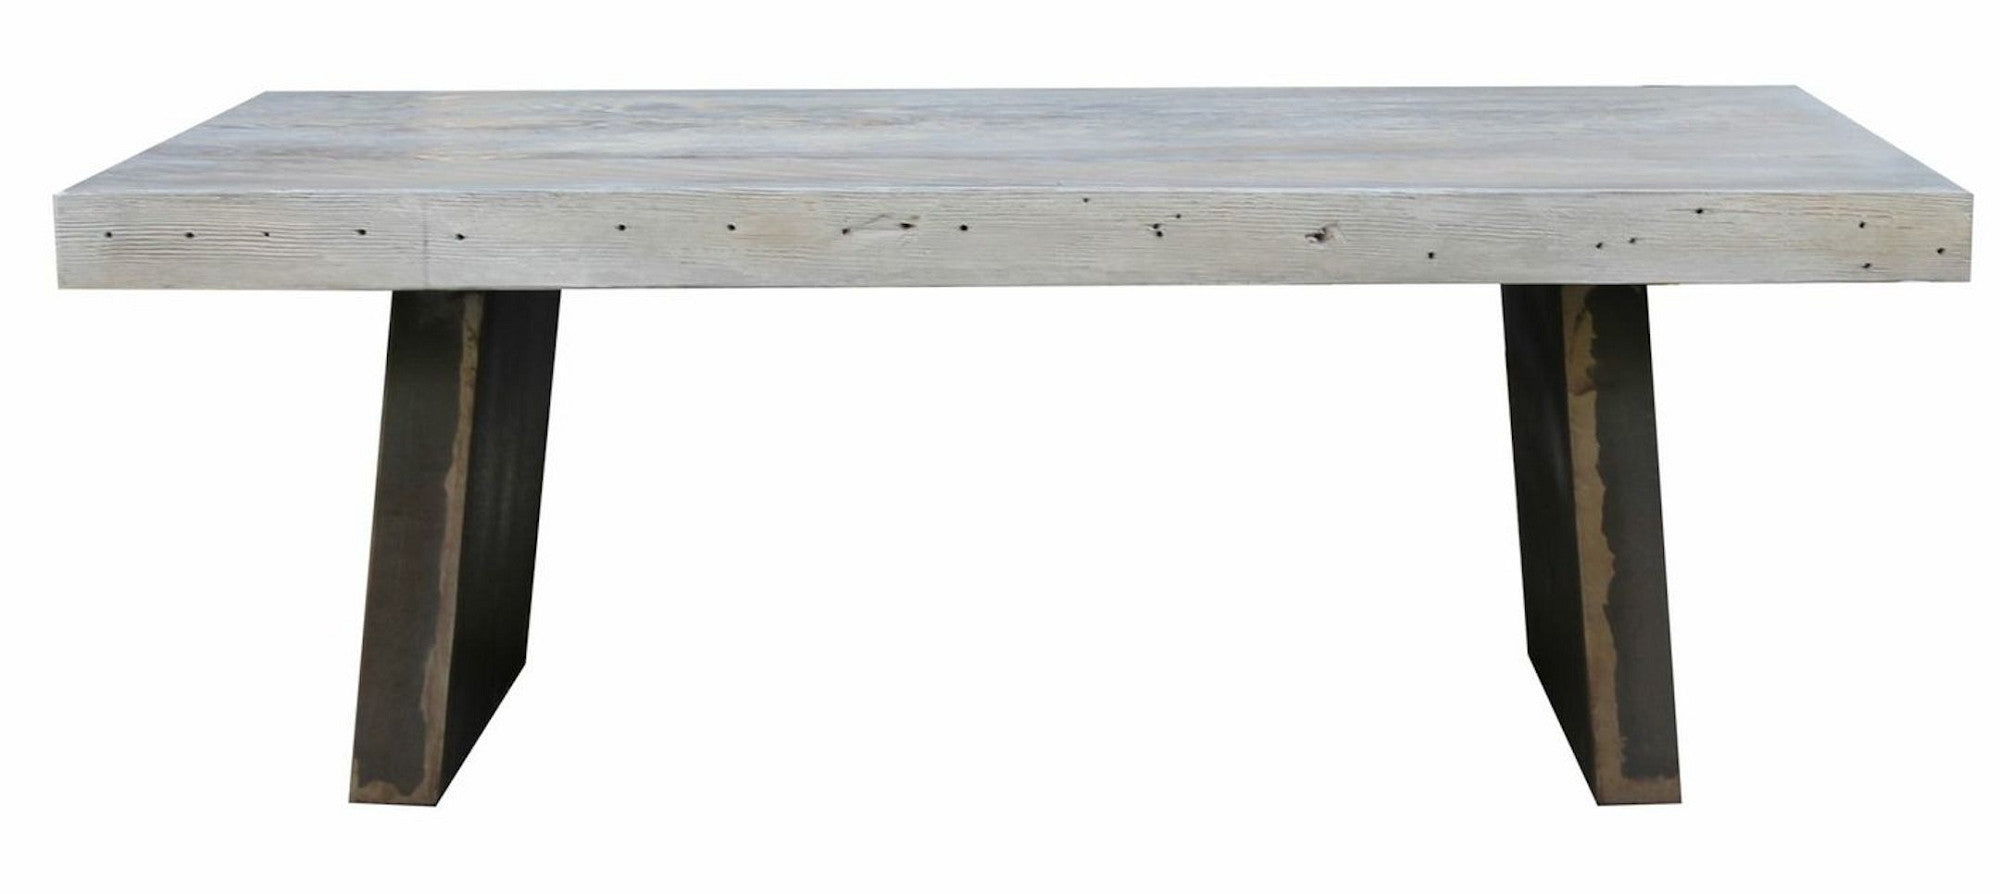 Vintage Modern Reclaimed Wood Coffee Table